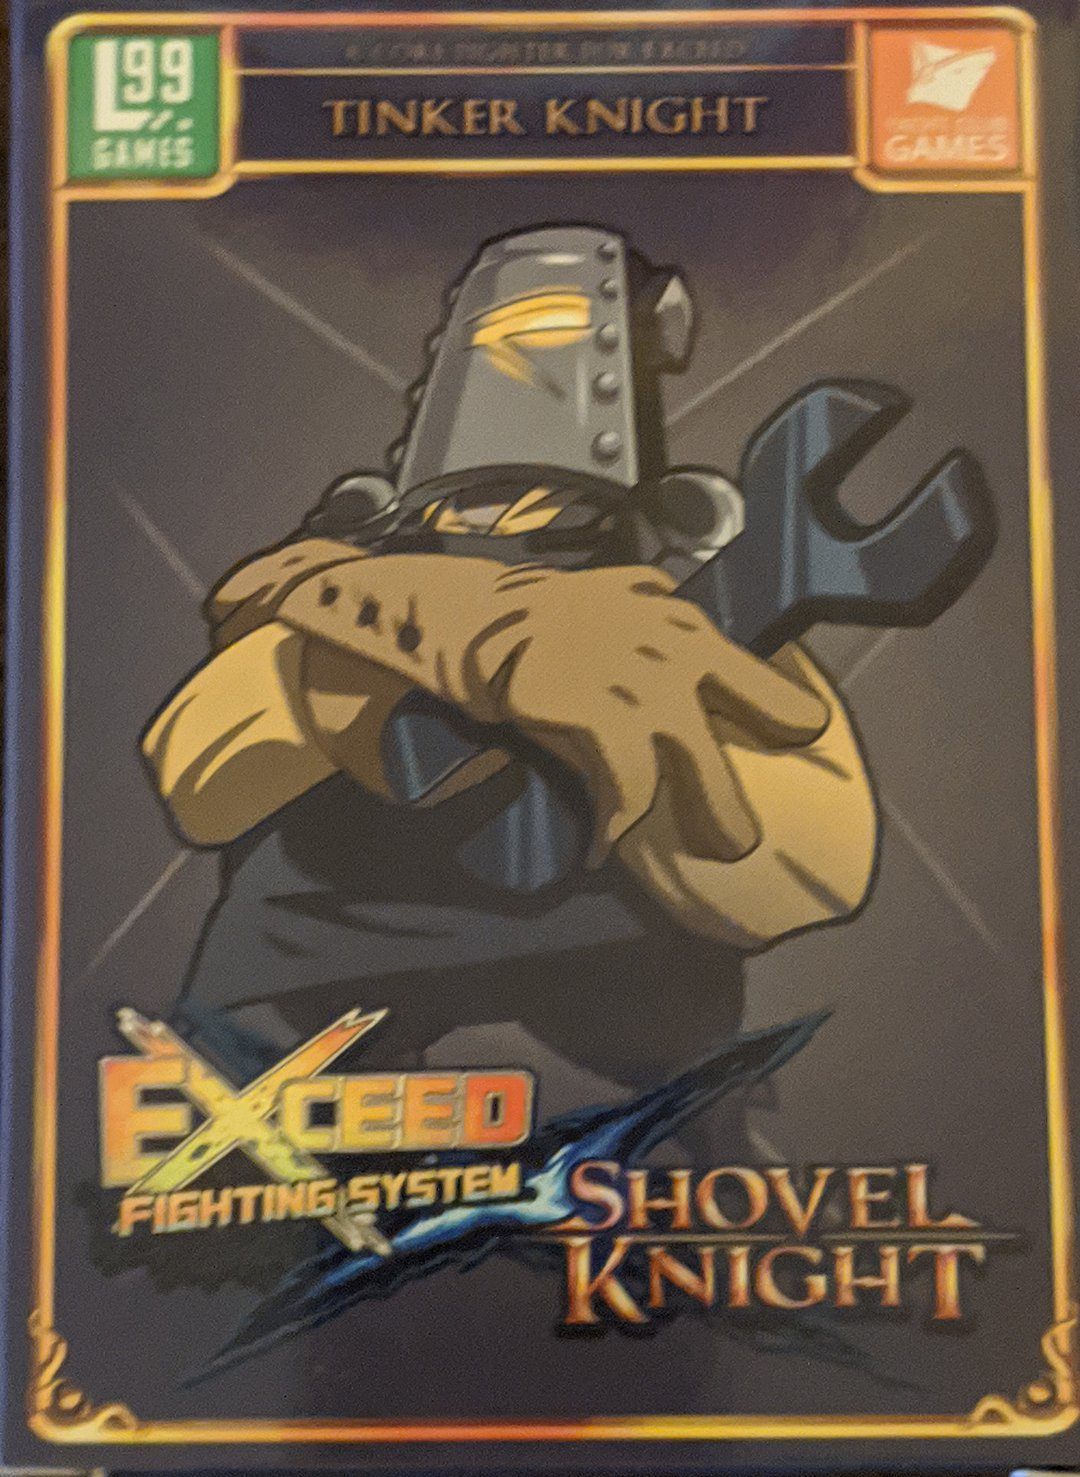 exceed shovel knight tinker